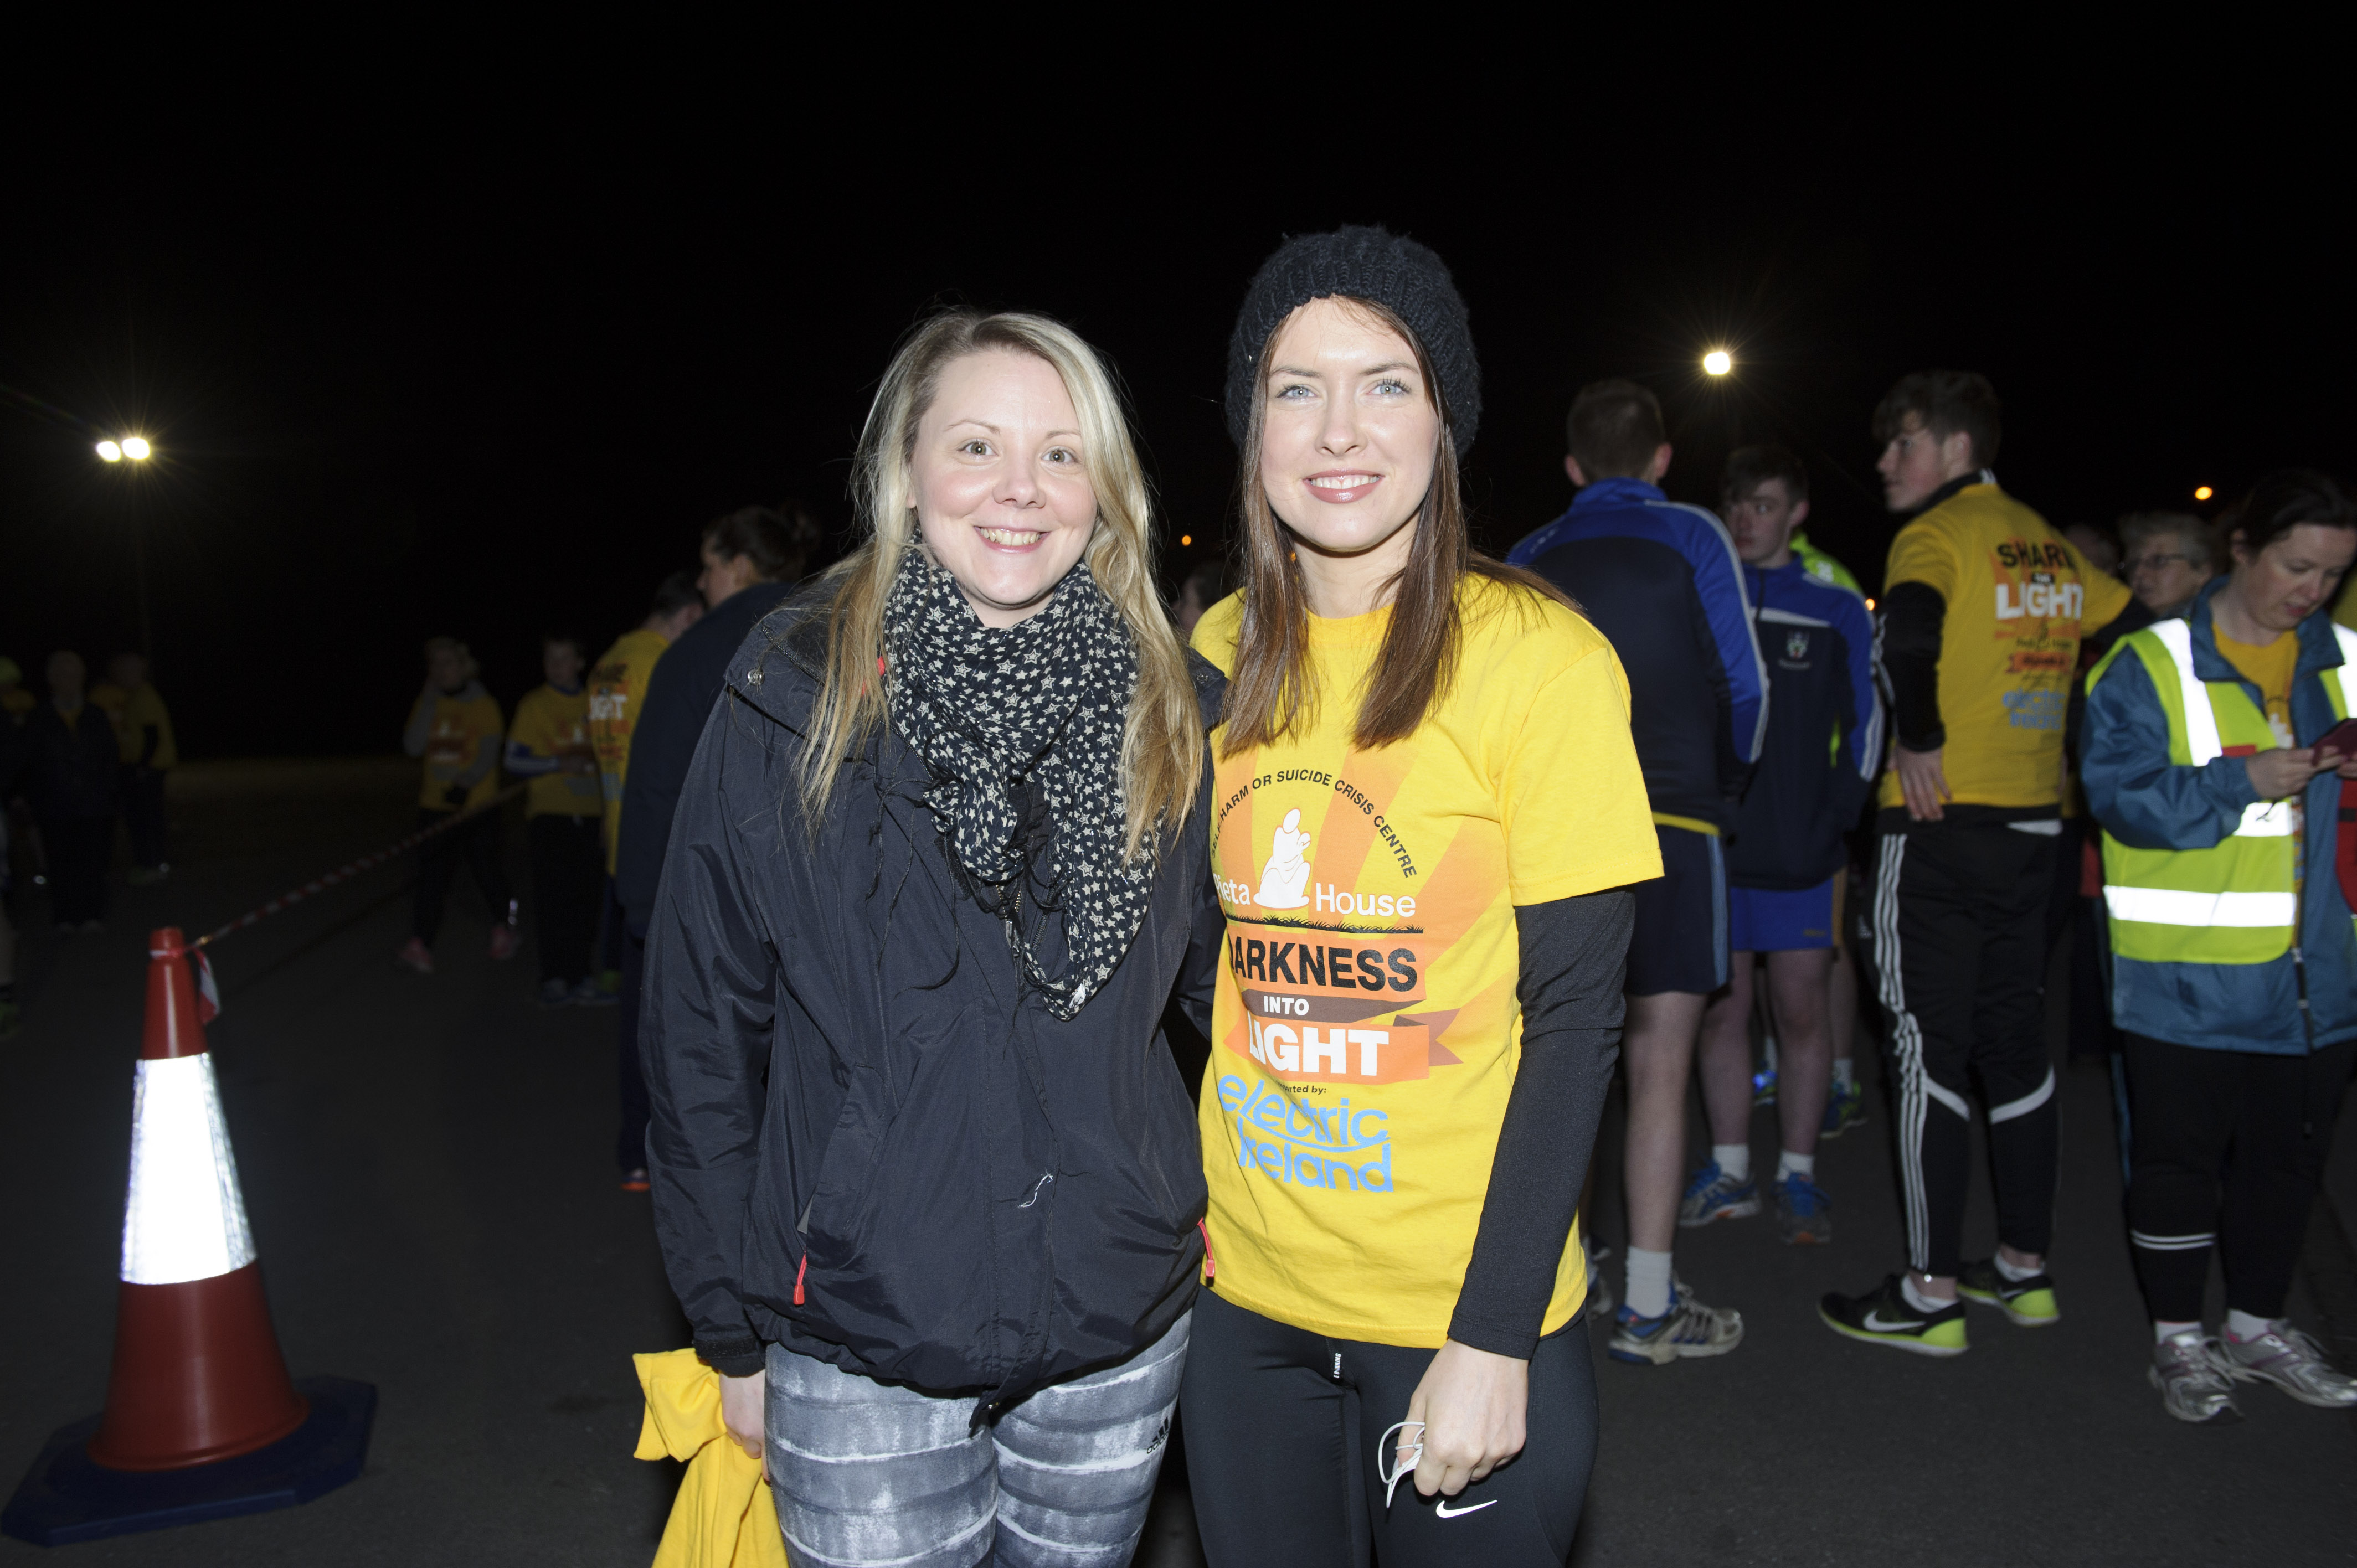 Emma O'Hara and Aideen Kerr at the Darkness Into Light 5k for Pieta House. ©Rory Geary/The Northern Standard